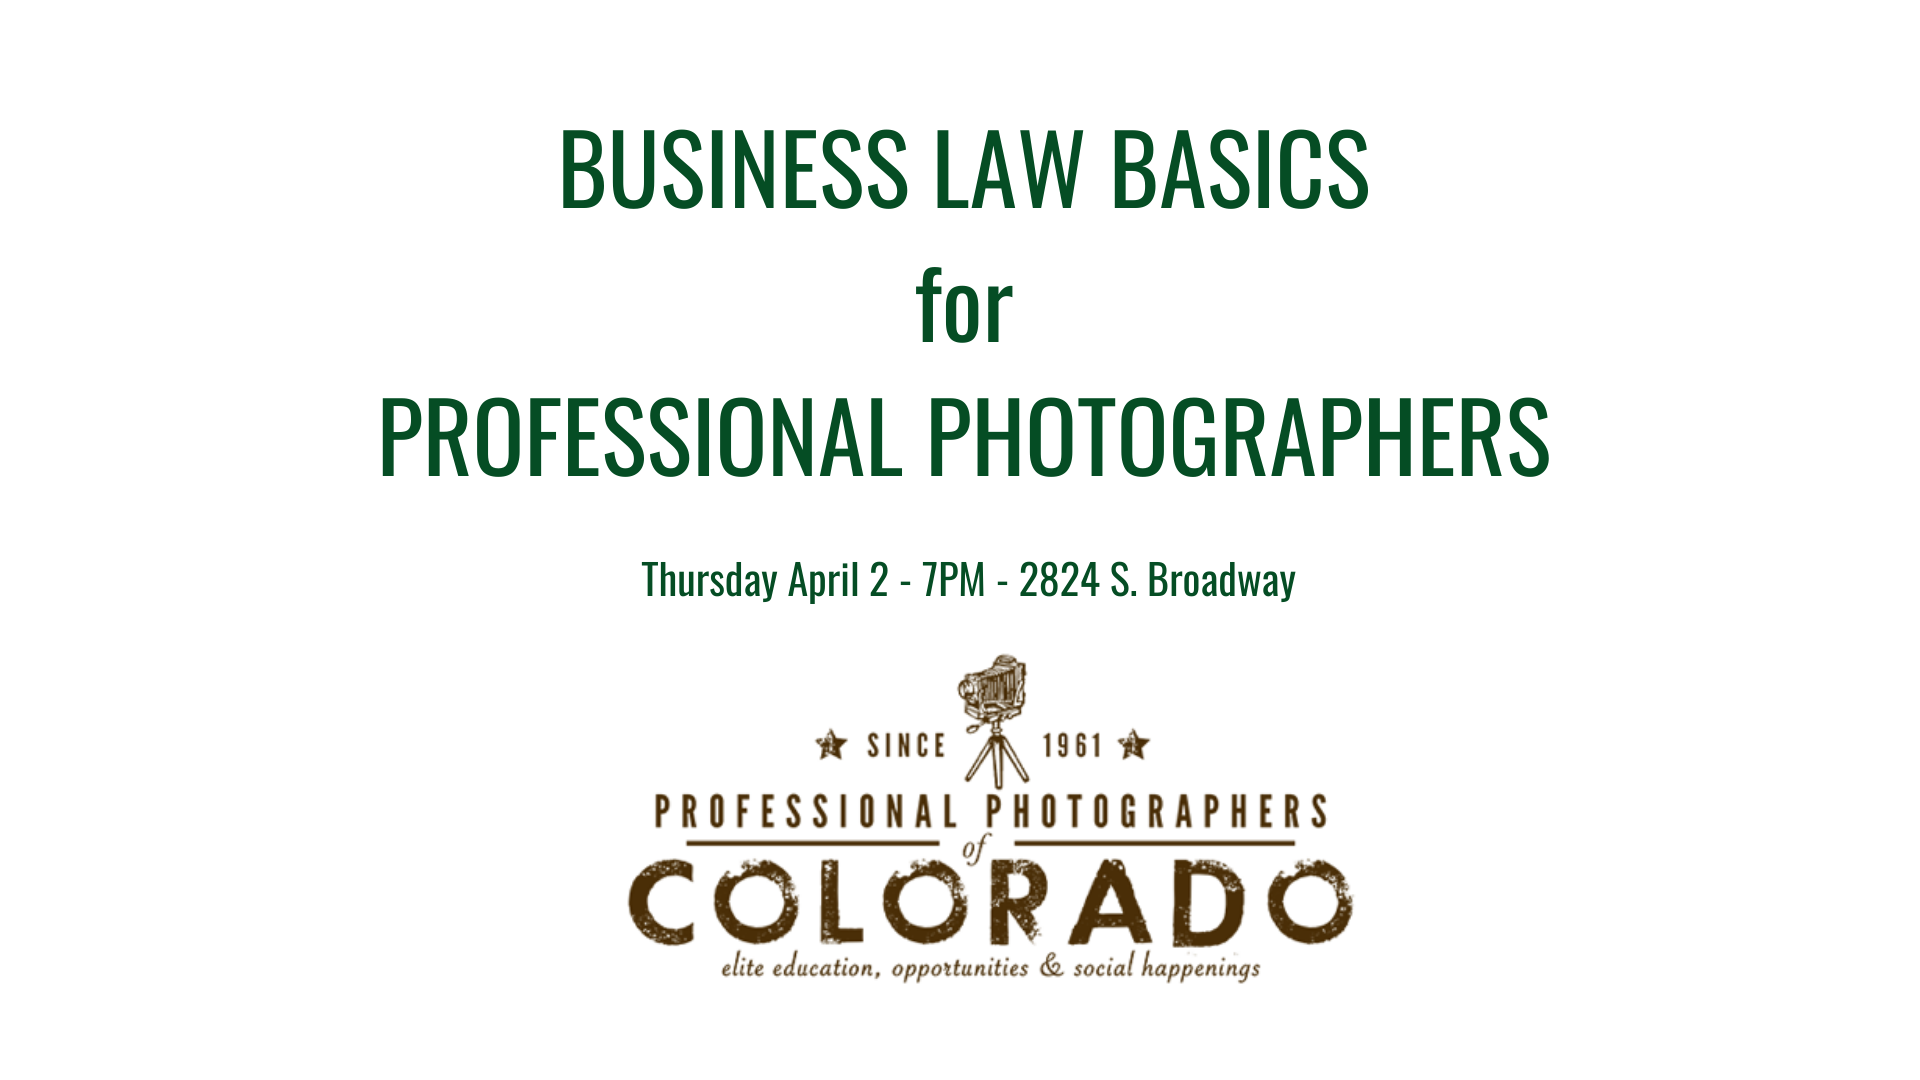 Business Law Basics for Professional Photographers